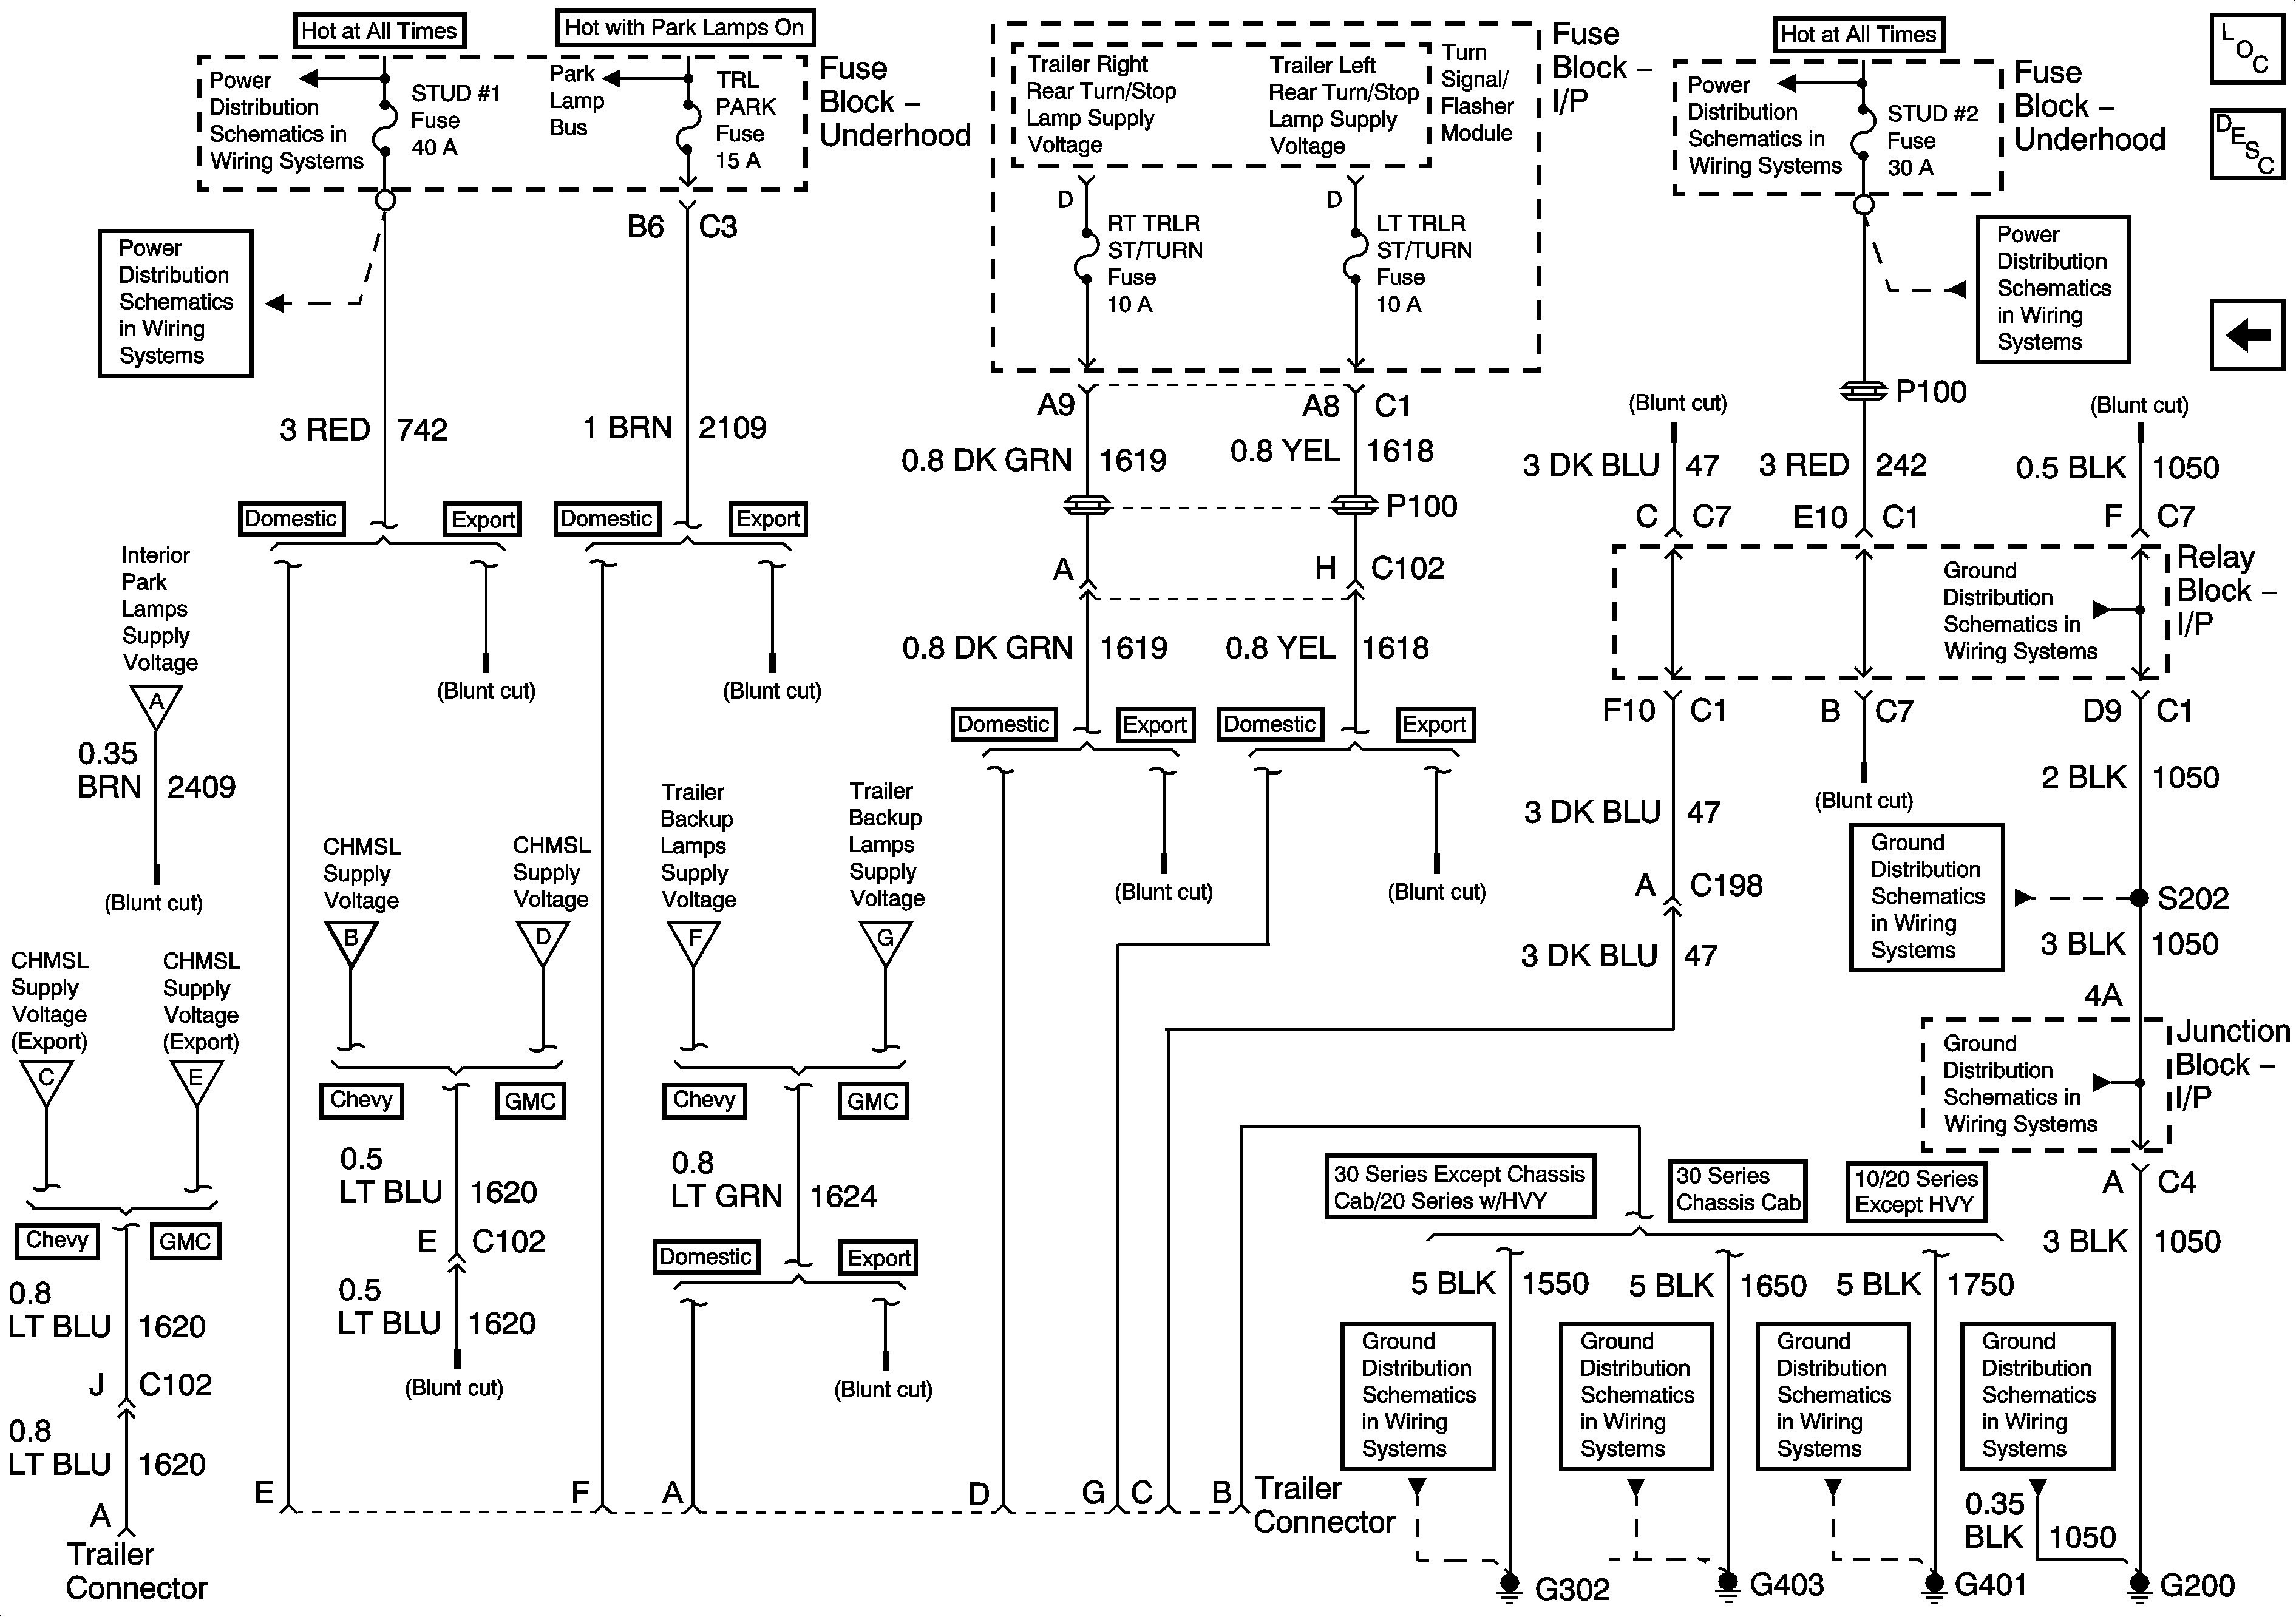 2005 chevy silverado center console diagram data wiring diagrams u2022 rh 207 246 69 74 Chevy Silverado Wiring Diagram Wire Diagram for 2007 Chevy Silverado